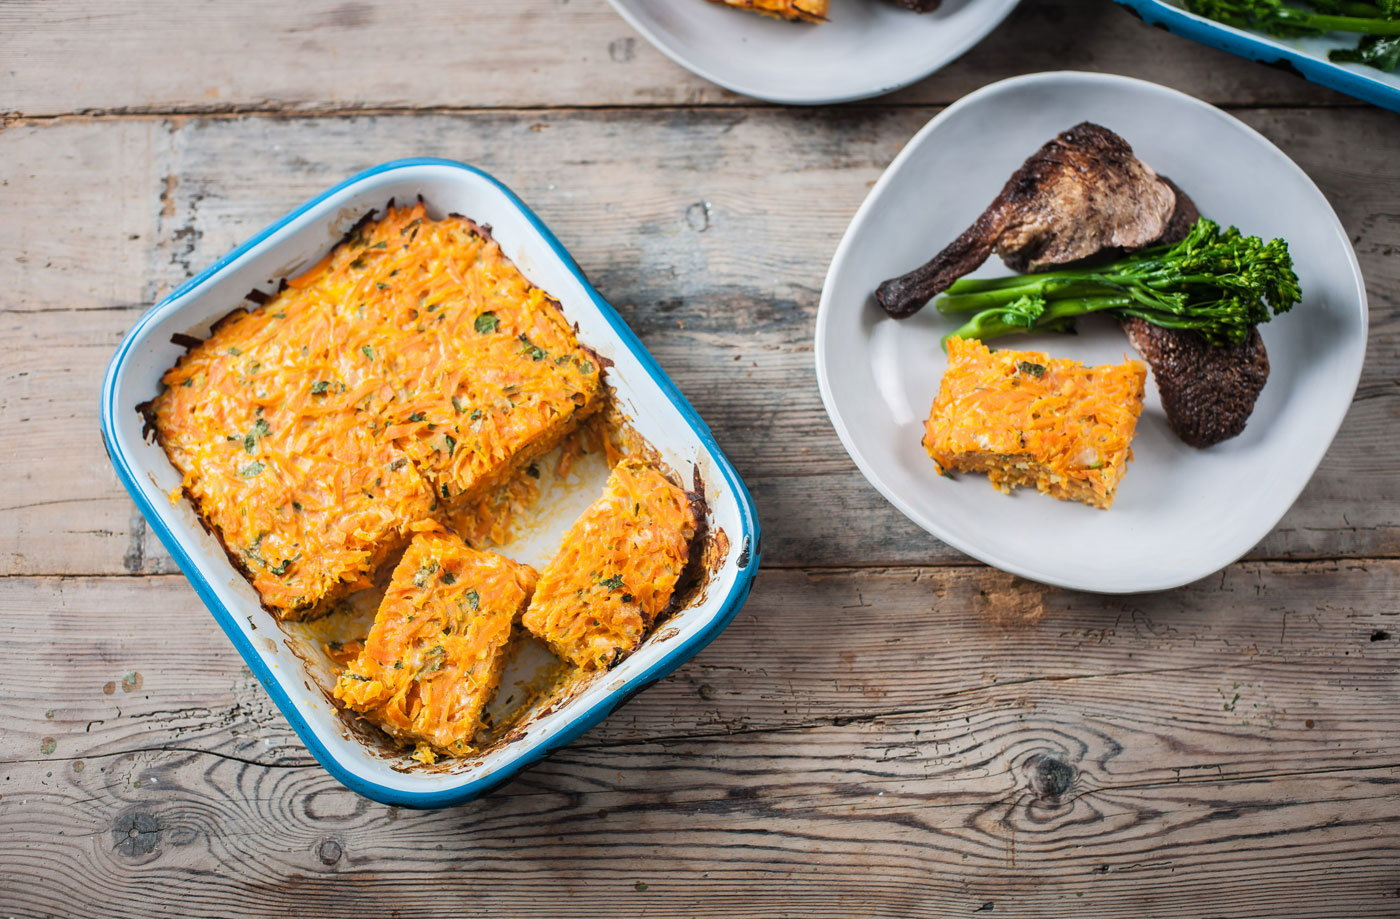 Marcus Wareing's cheesy carrot bake recipe